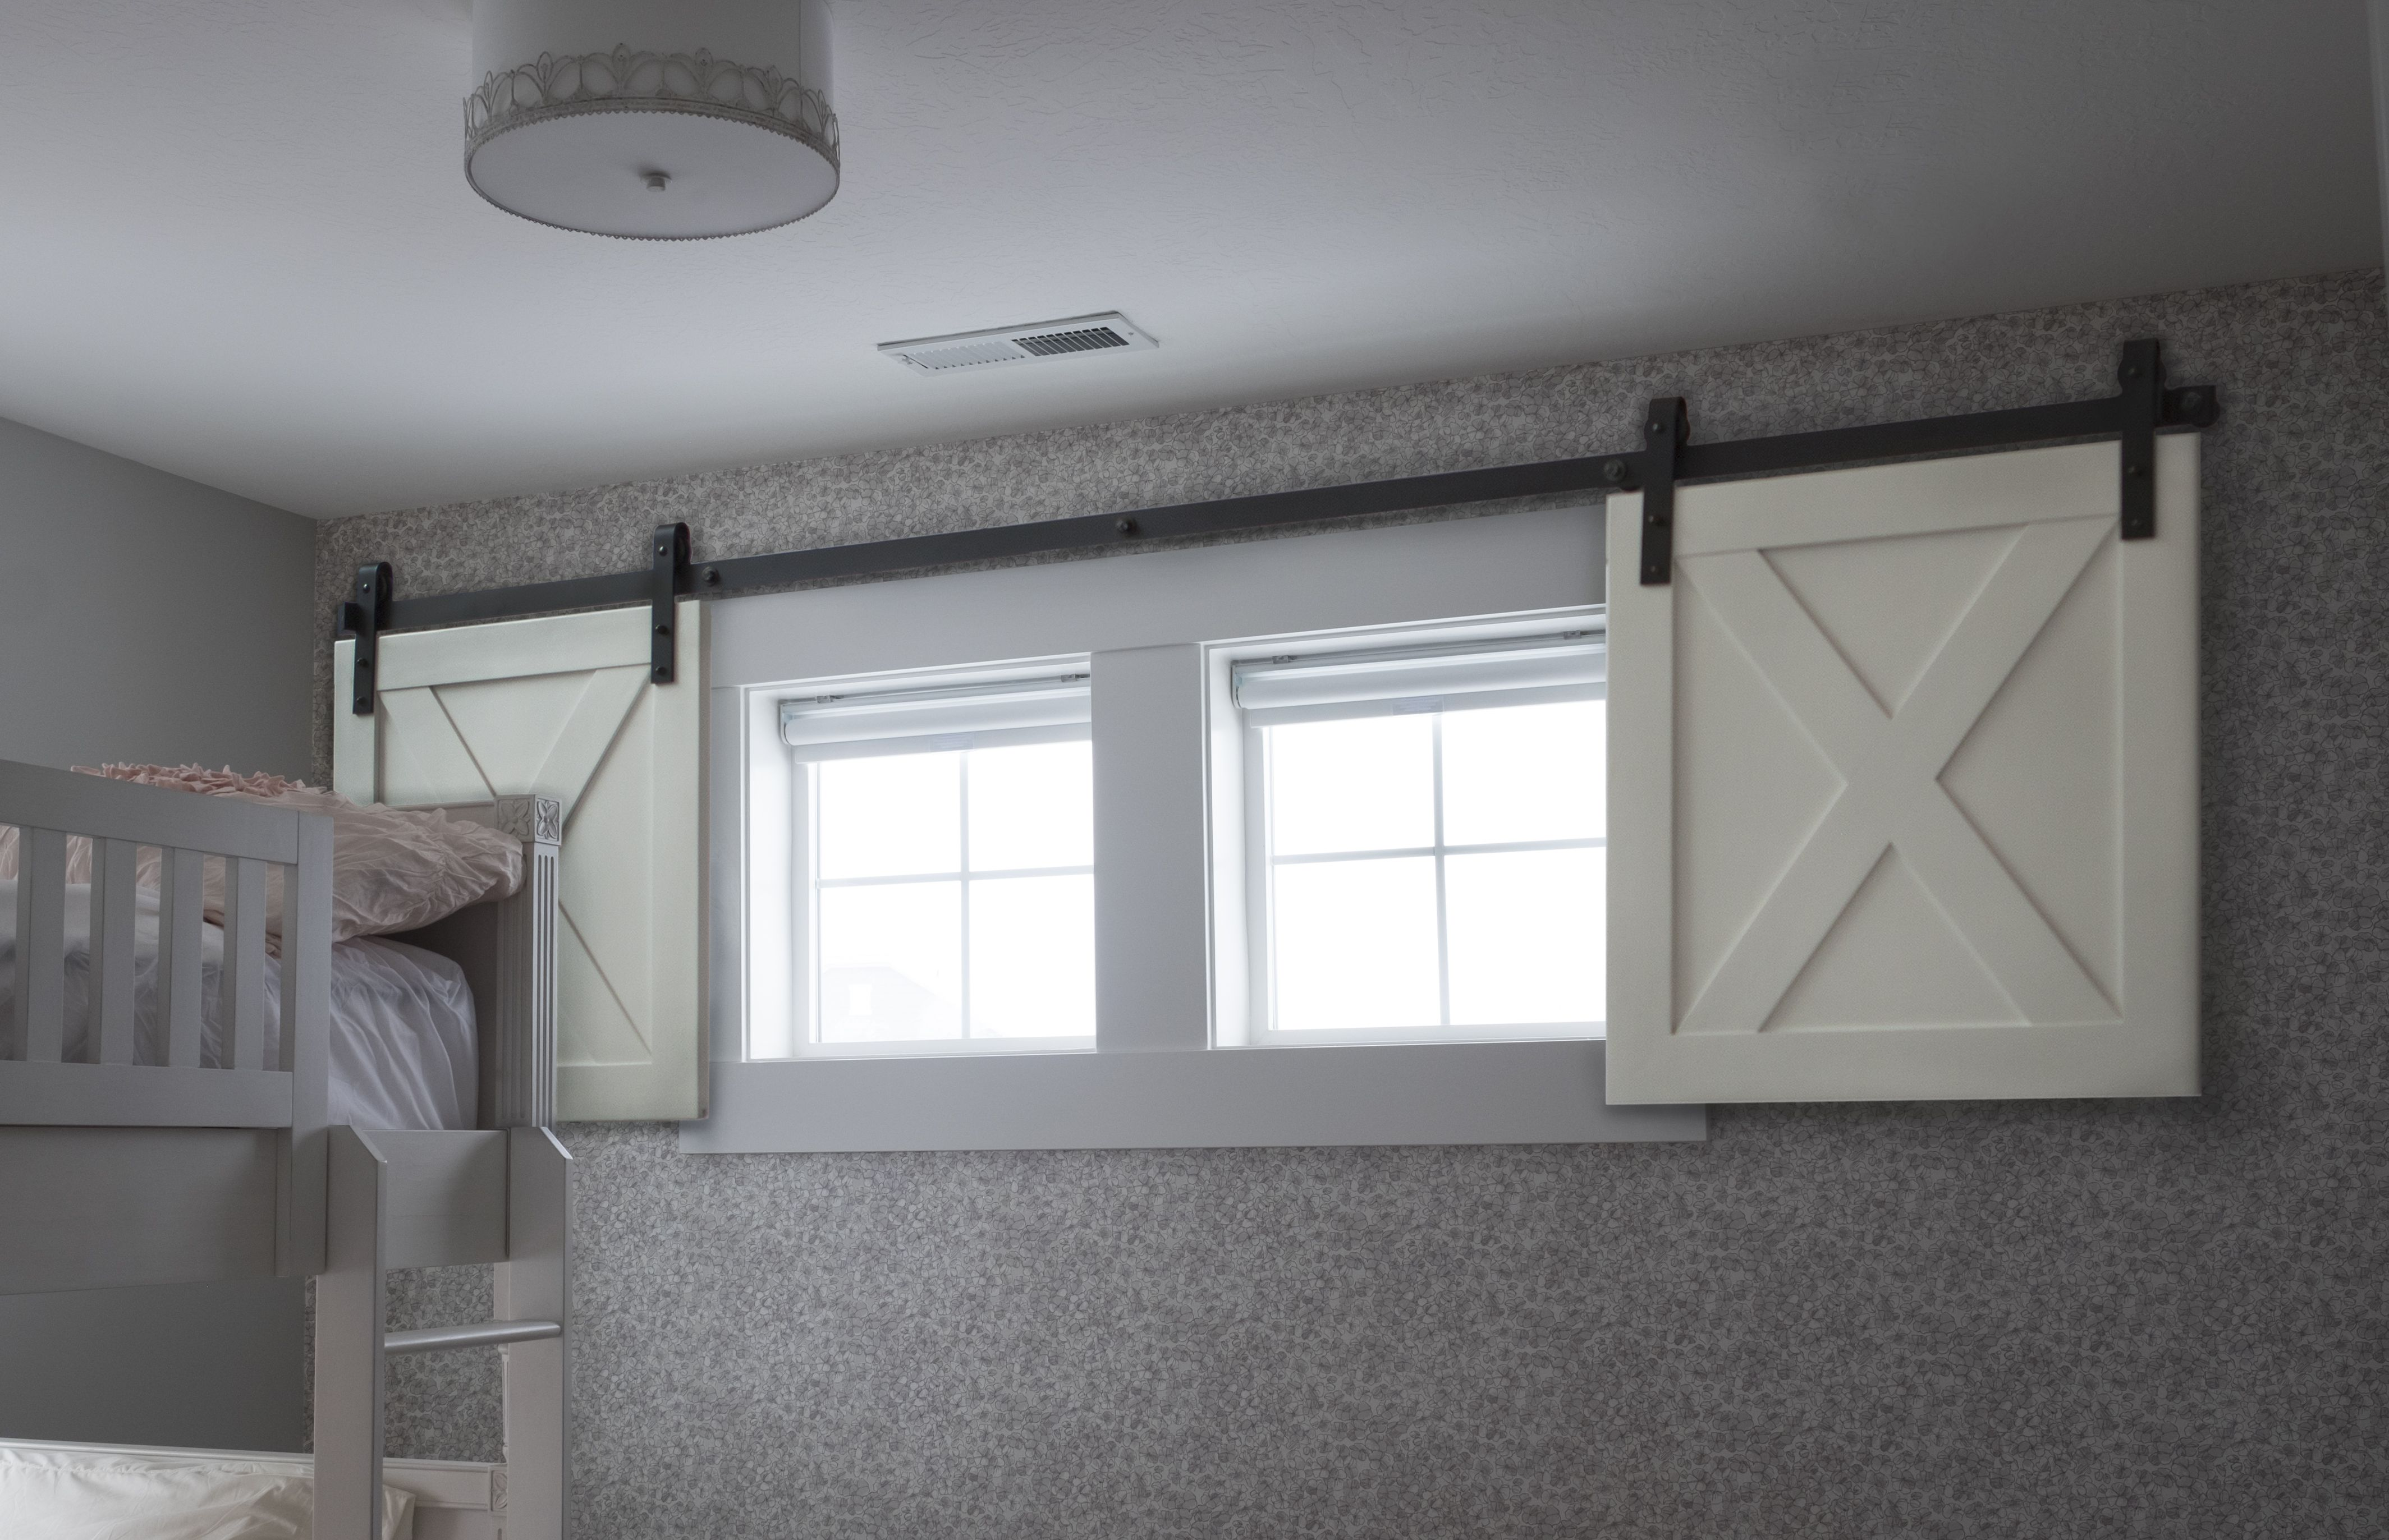 Mini Barn Door Shutters Perfect For Small Spaces Finishing Basement Basement Bedrooms Basement Renovations